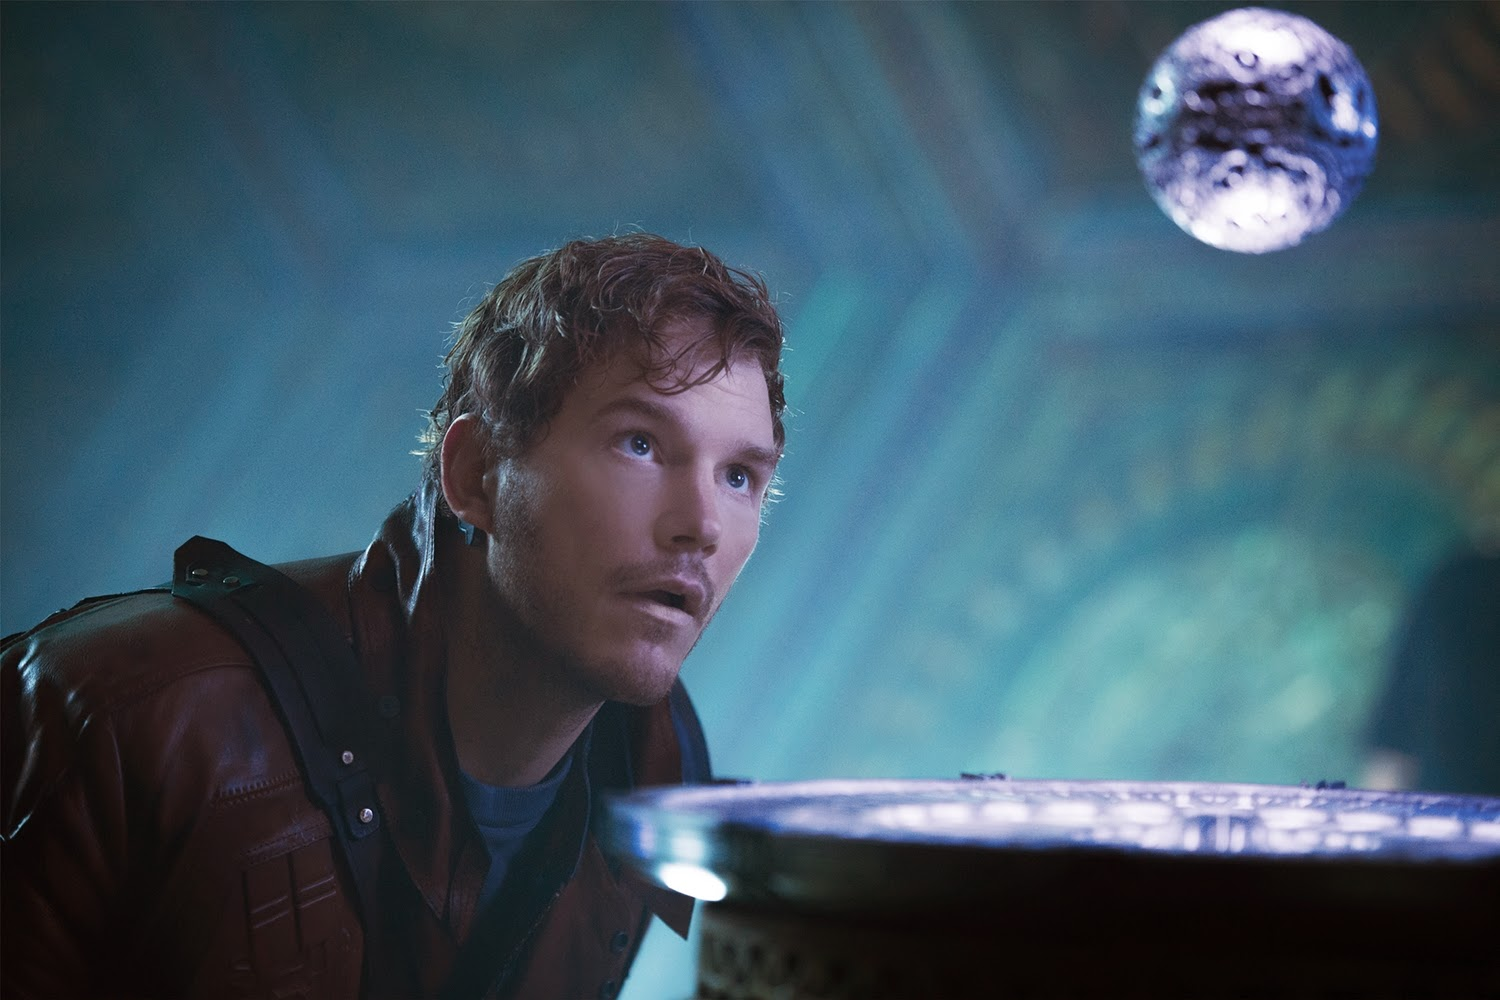 Starlord – Guardians of the Galaxy |Teaser Trailer